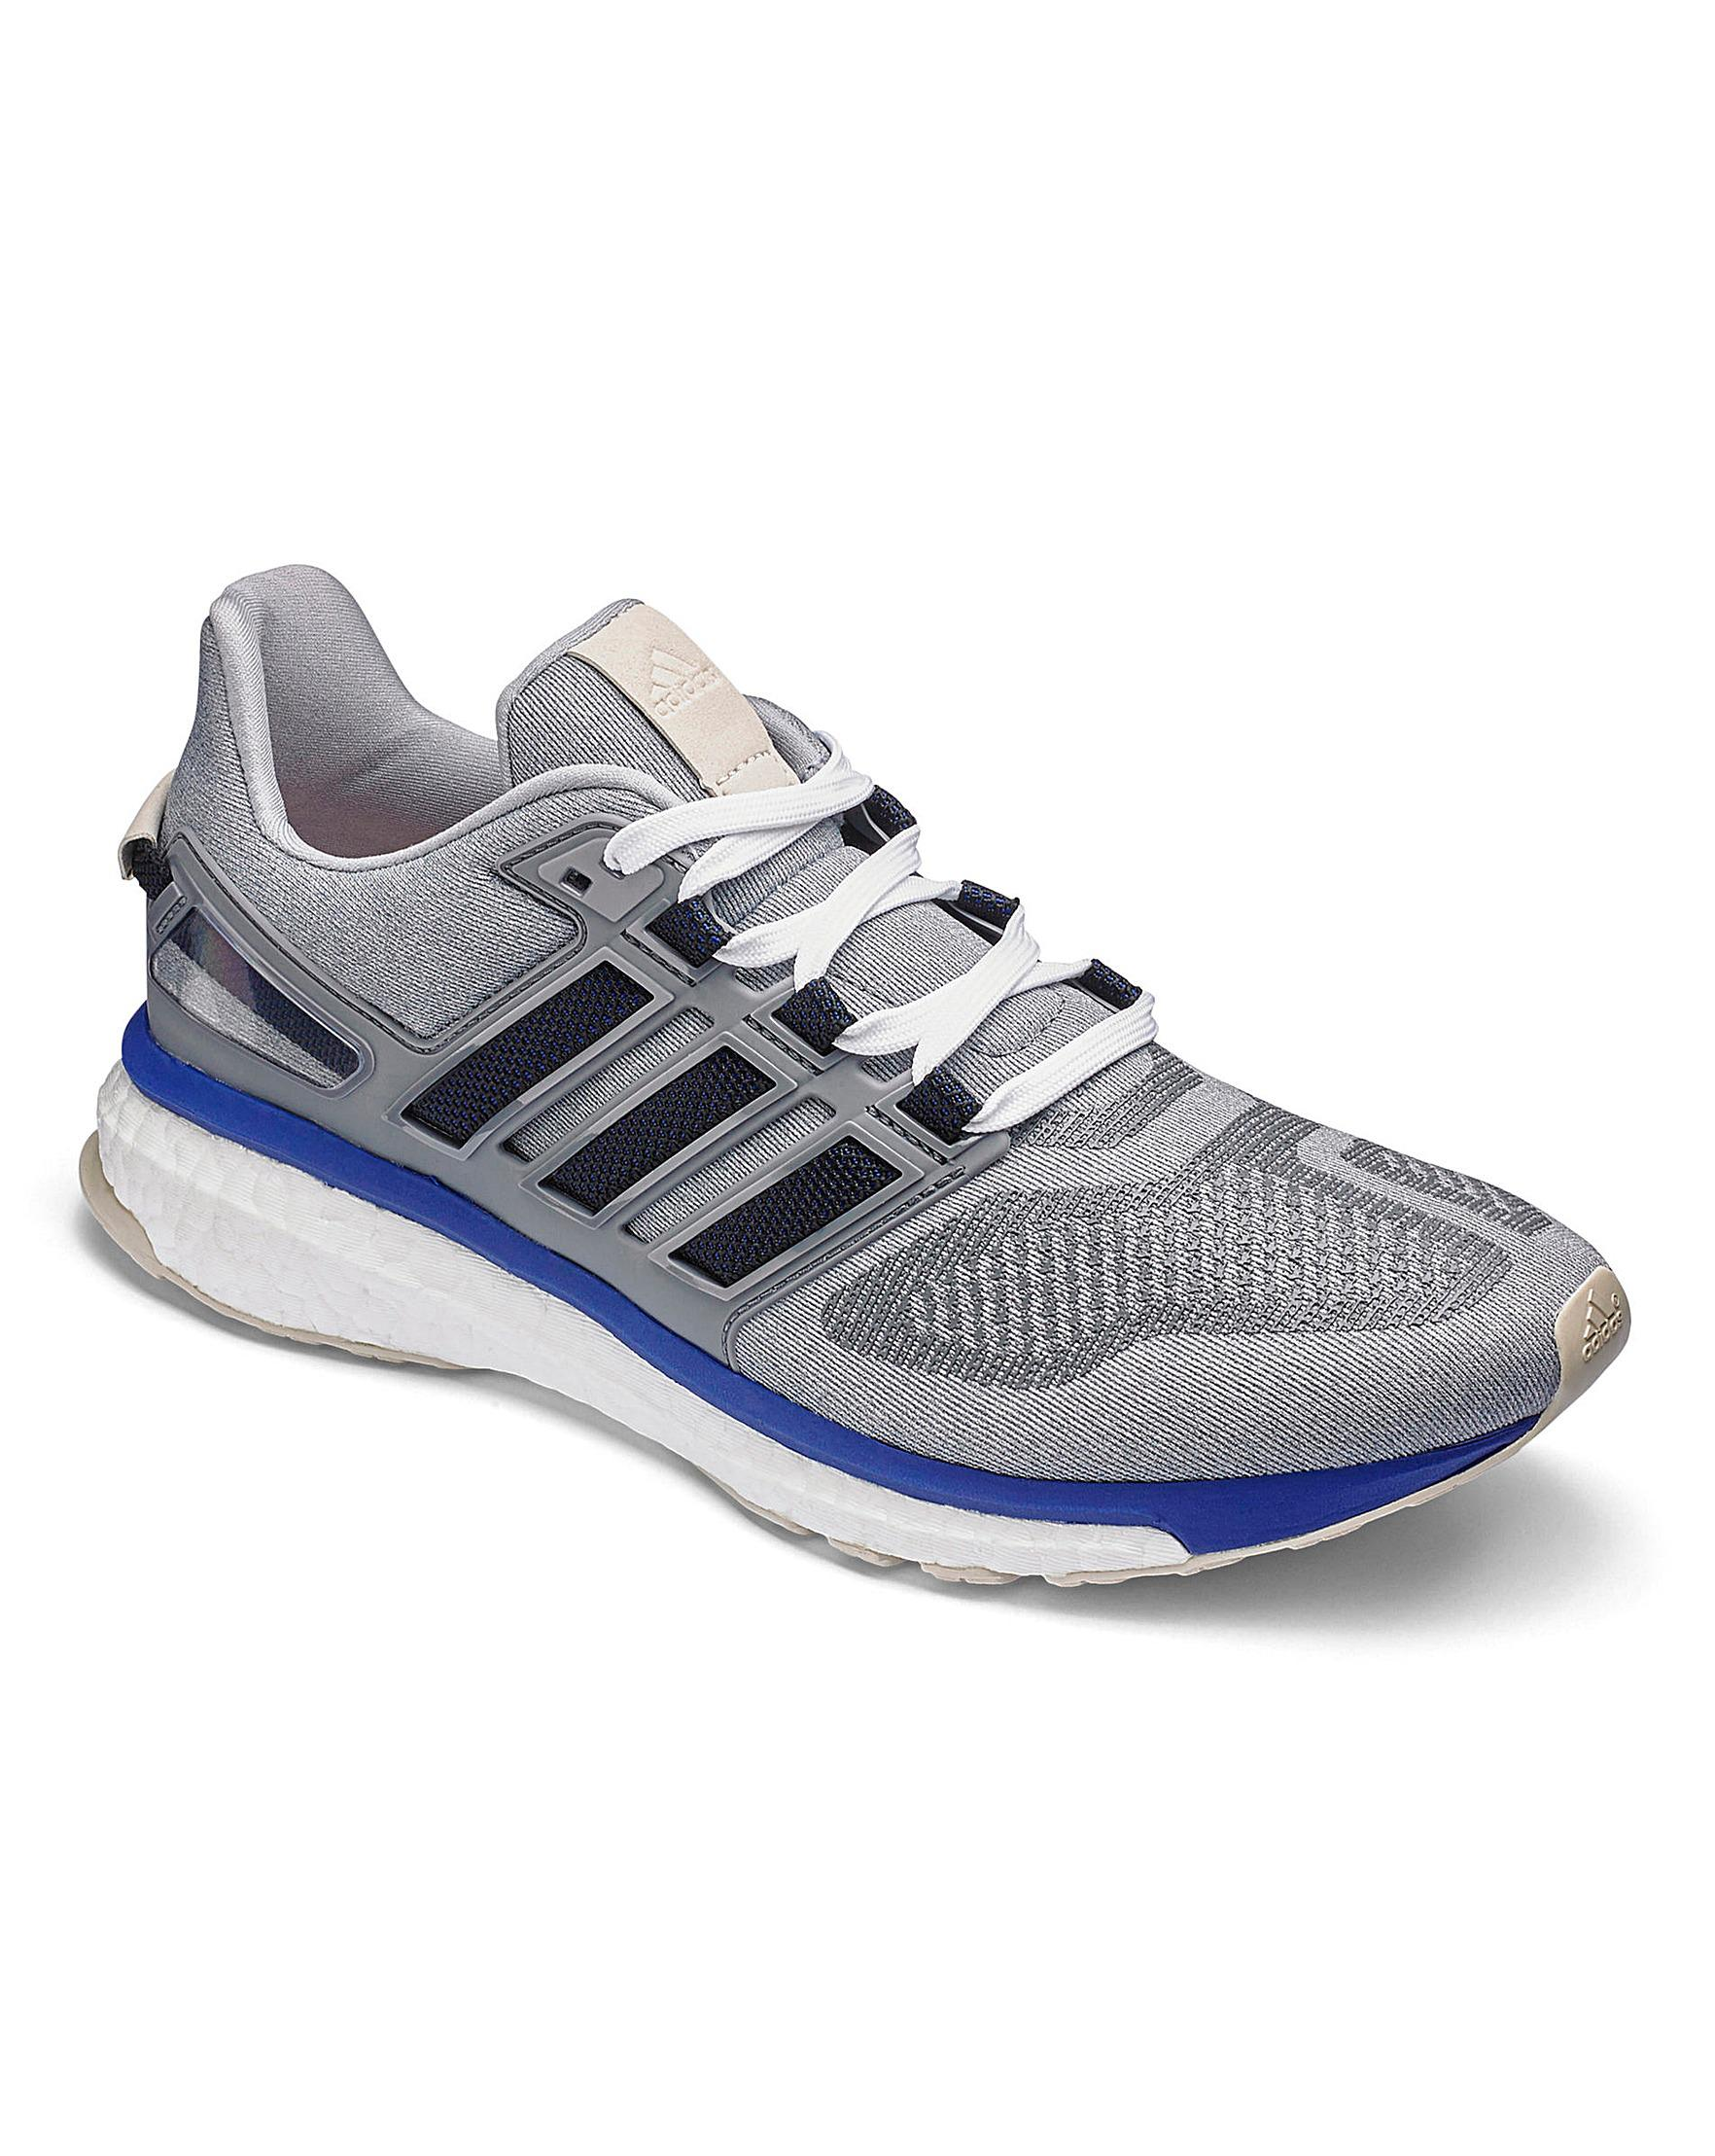 huge discount fee67 6541e adidas. Mens Gray Energy Boost 3 Trainers